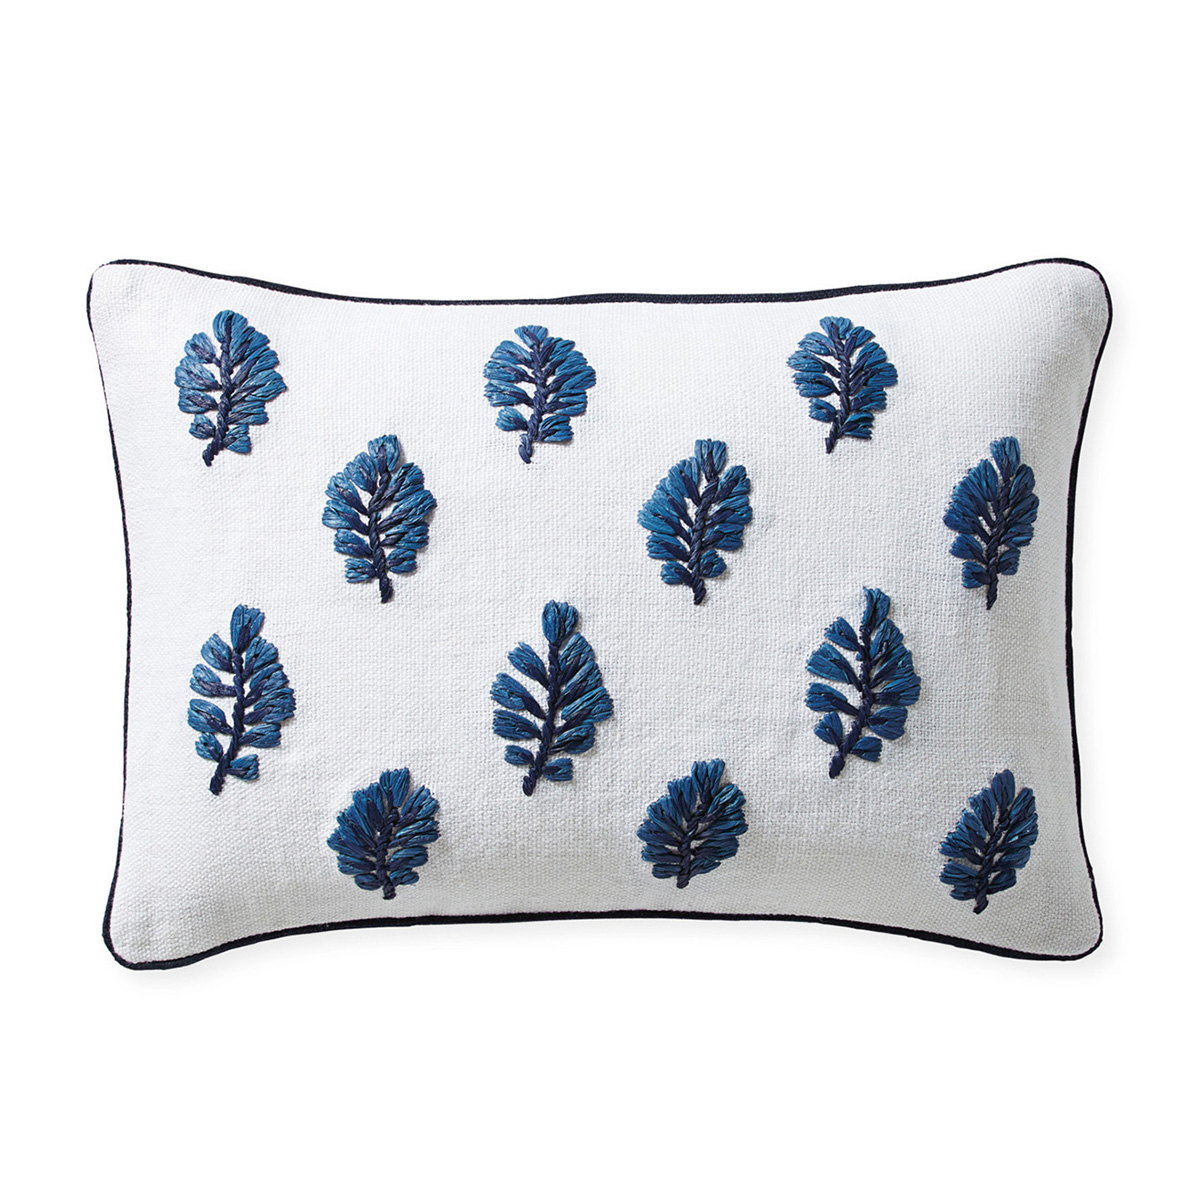 serena and lilly blossom pillow cover in white.jpg